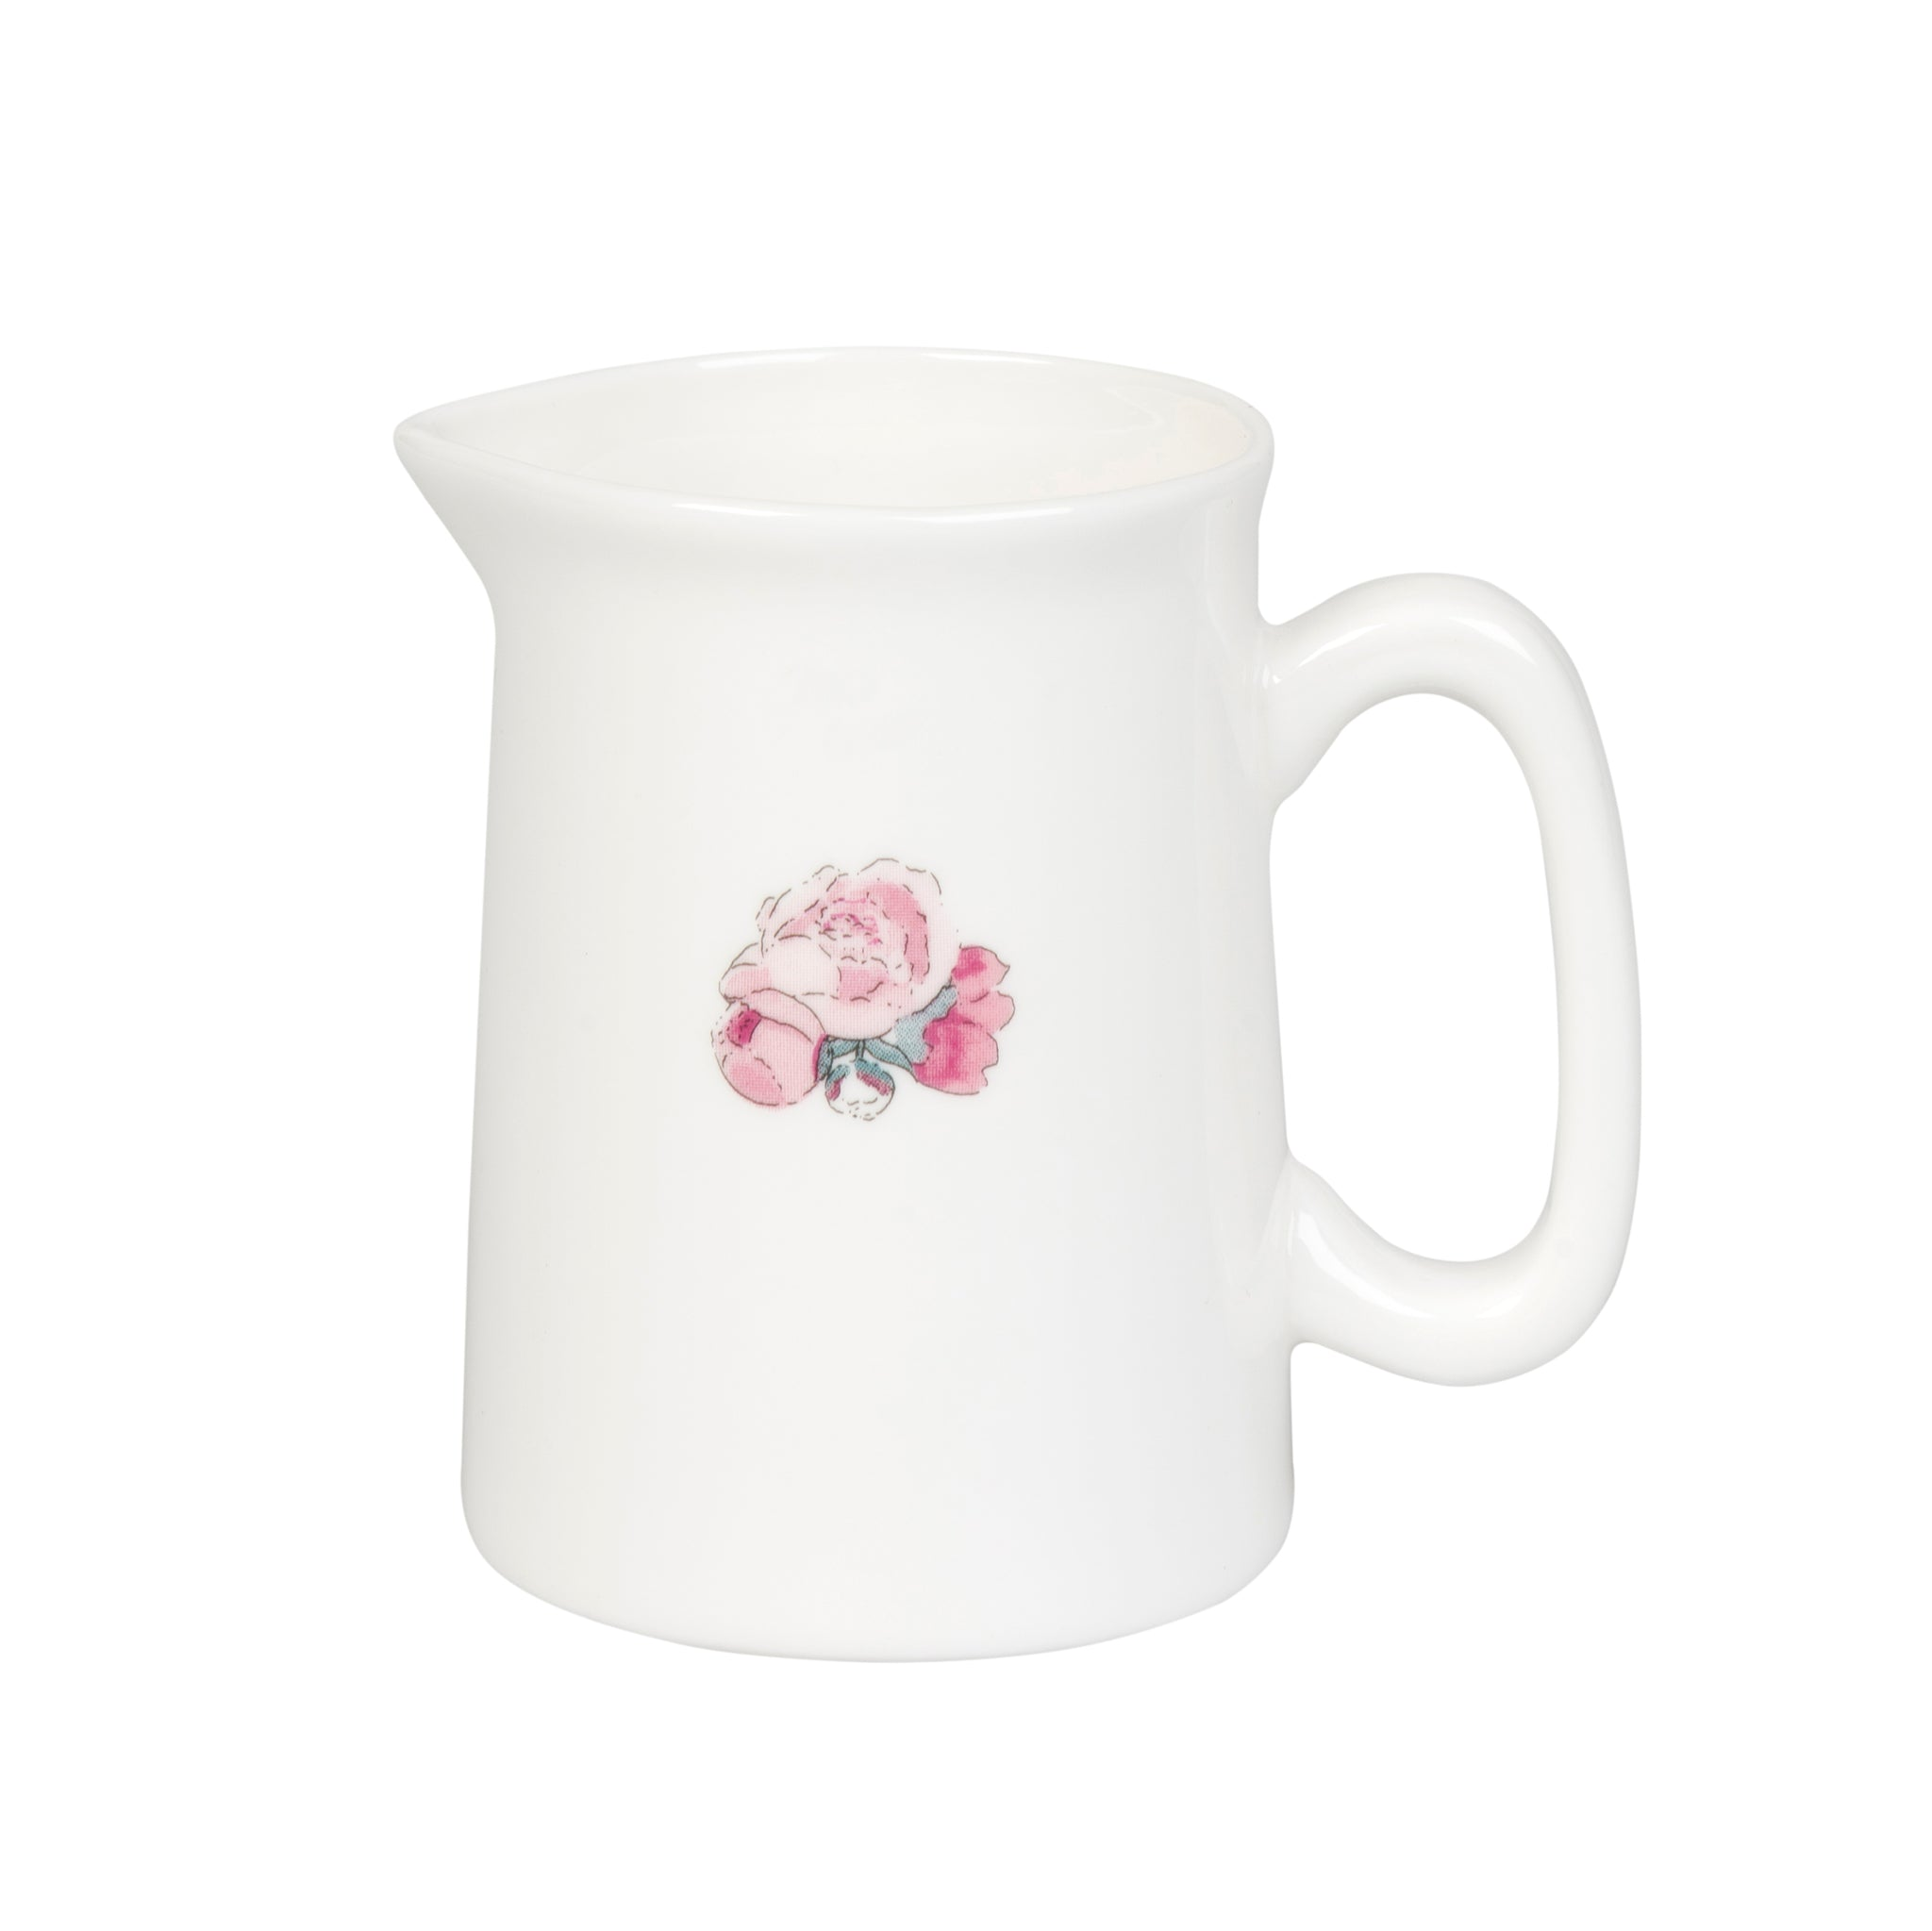 Peony Jug by Sophie Allport